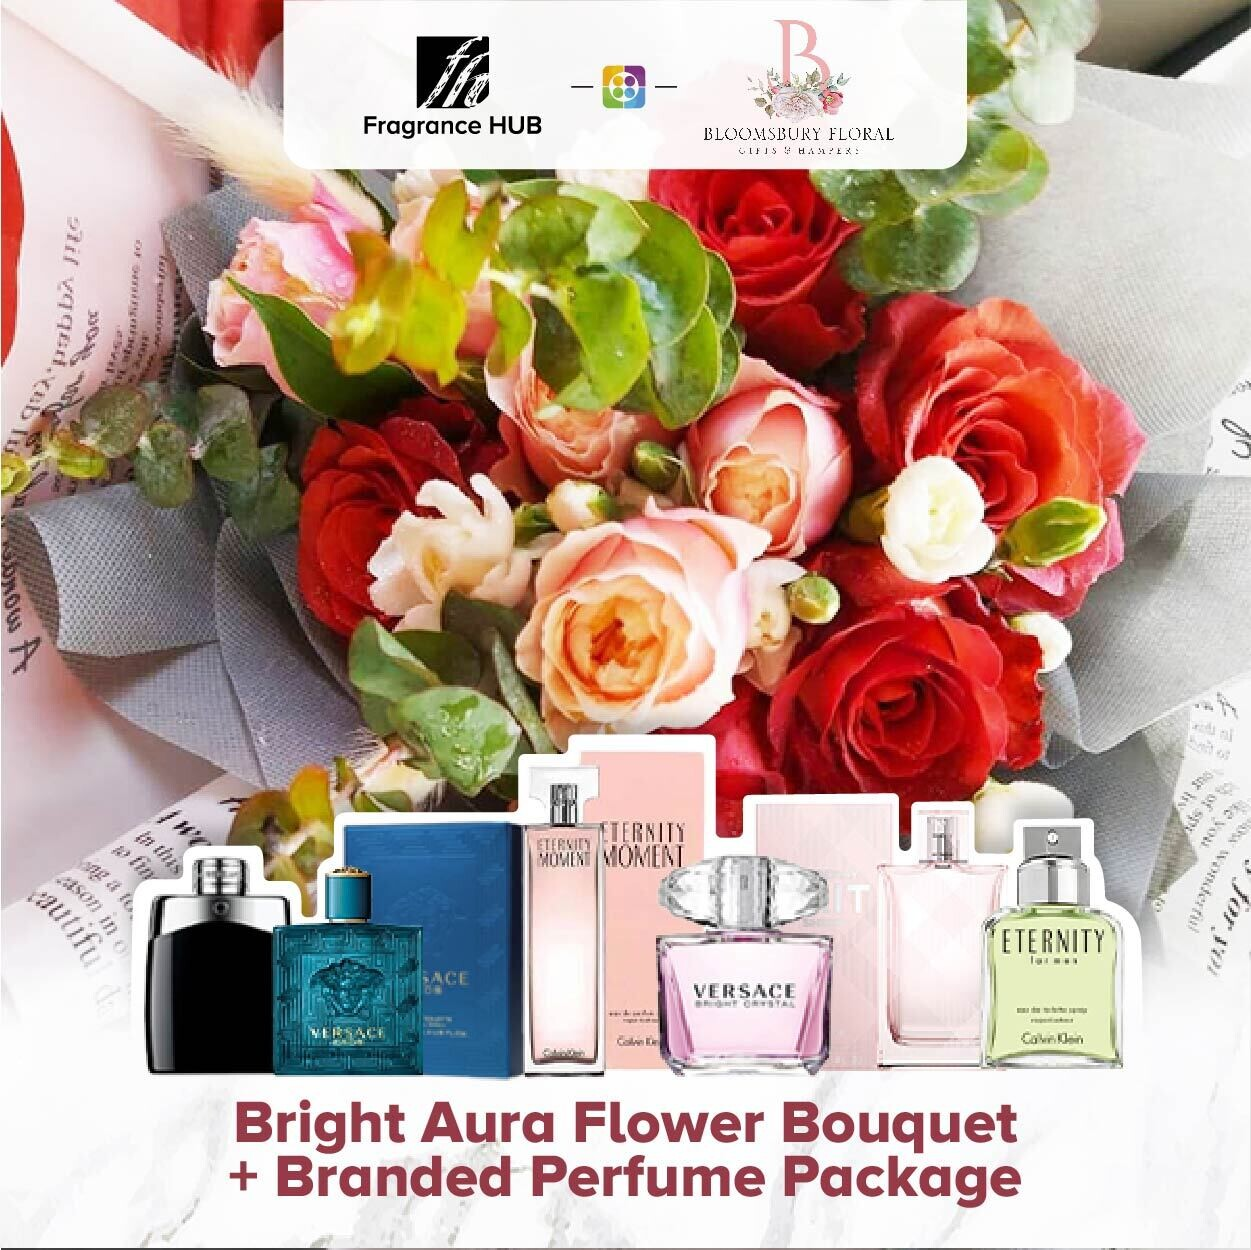 Bright Aura Flower Bouquet + Fragrance Hub Branded Perfume (By: Bloomsbury from Puchong)